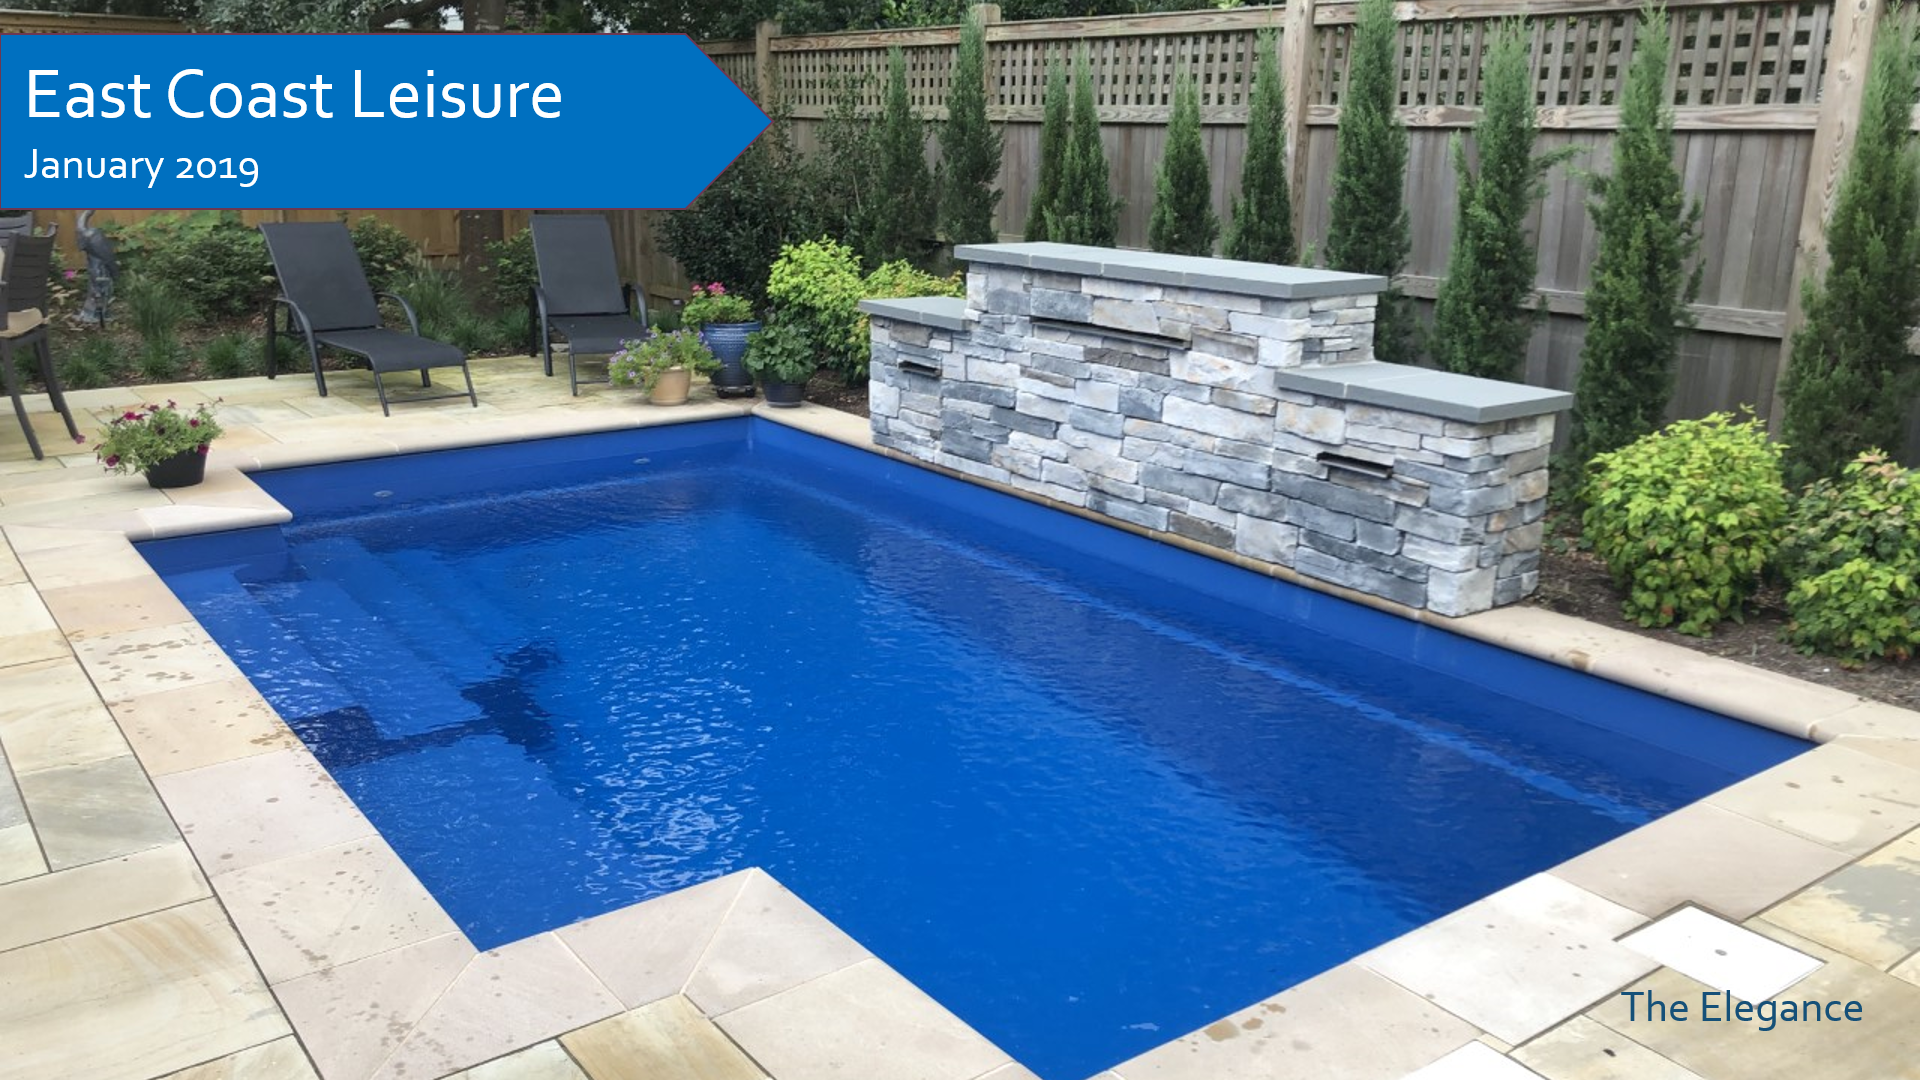 Year In Review The Leisure Pools Pool Of The Month For January 2019 The Elegance Installed By East Coast Leisure 855 85 Sp Leisure Pools Pool Spa Pool